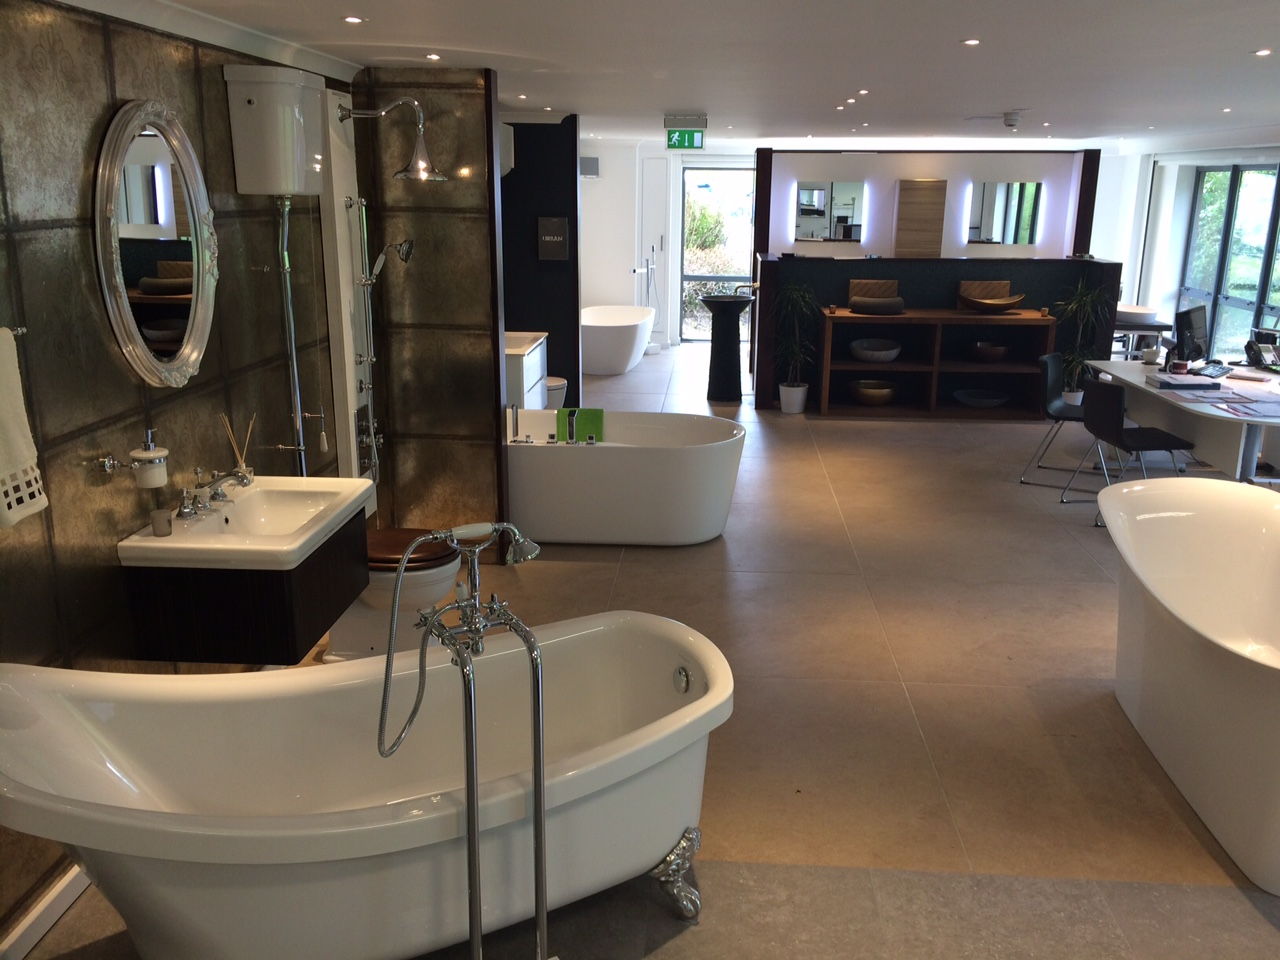 Bagno Design London Bagnodesign London Bagnodesign